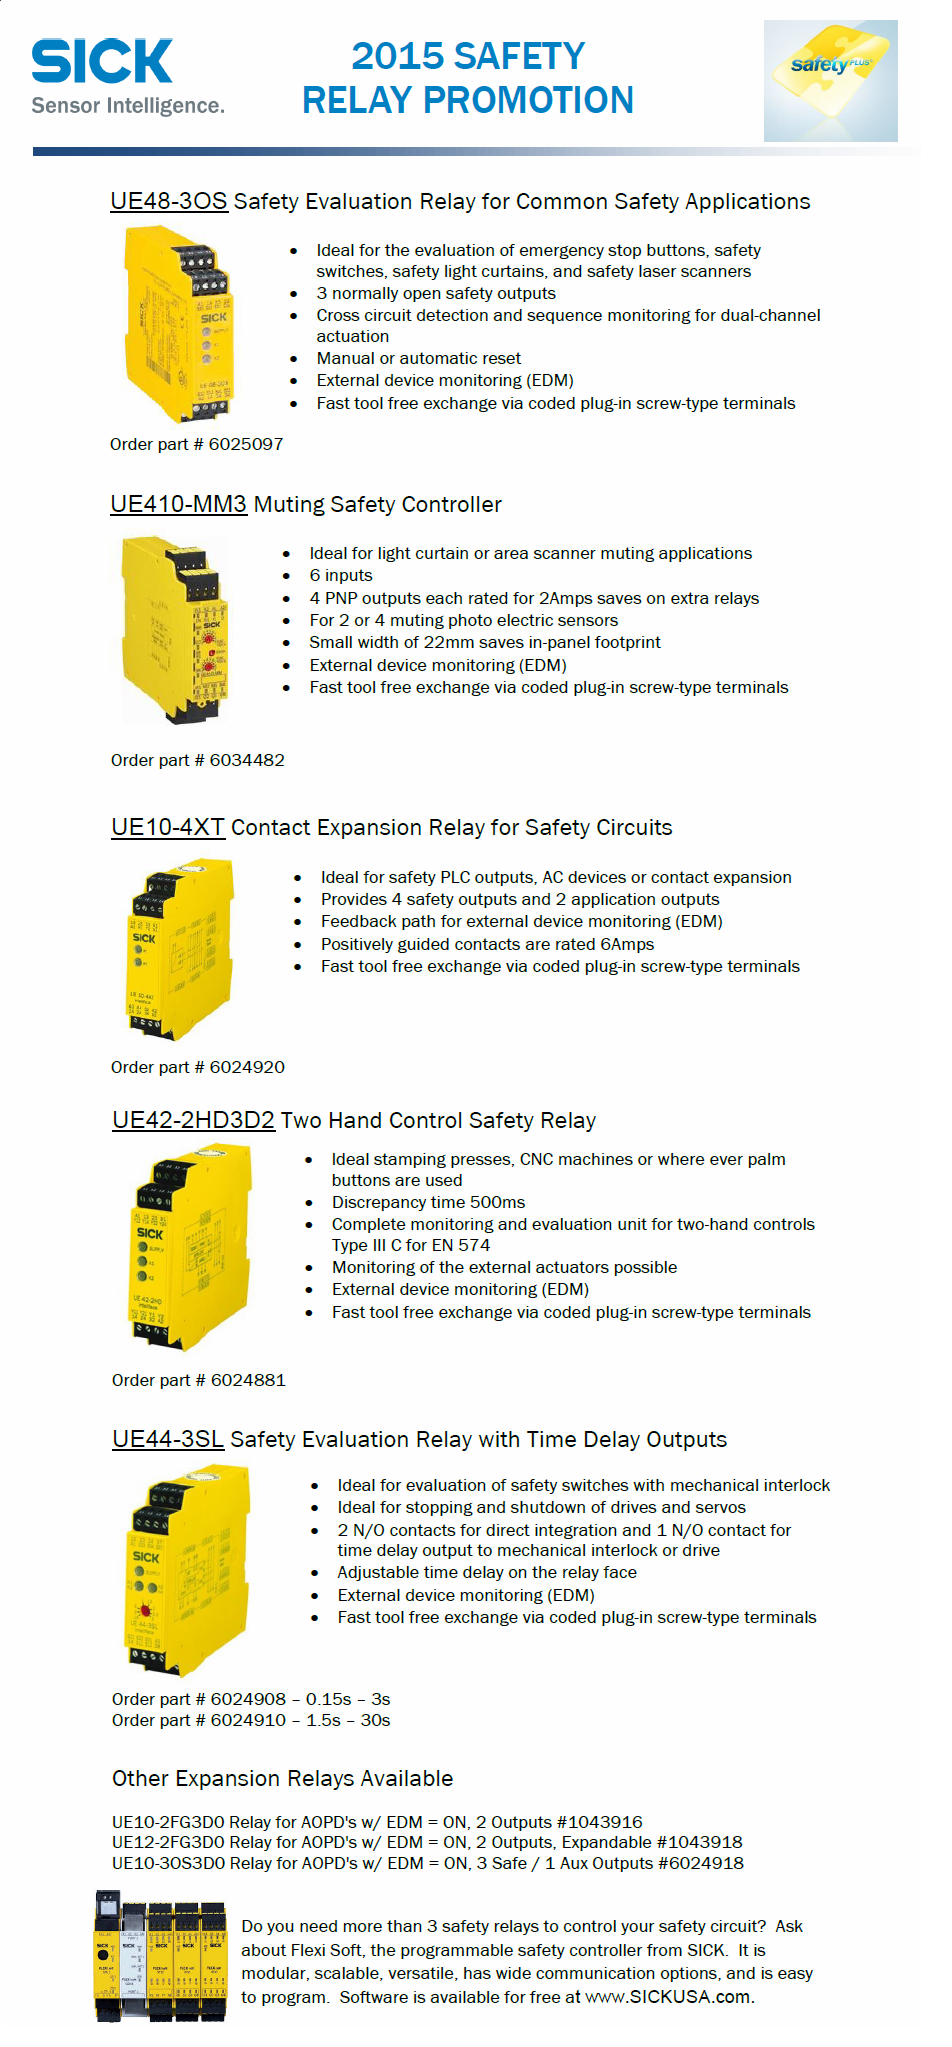 August 2015 Safety Relay Promotion